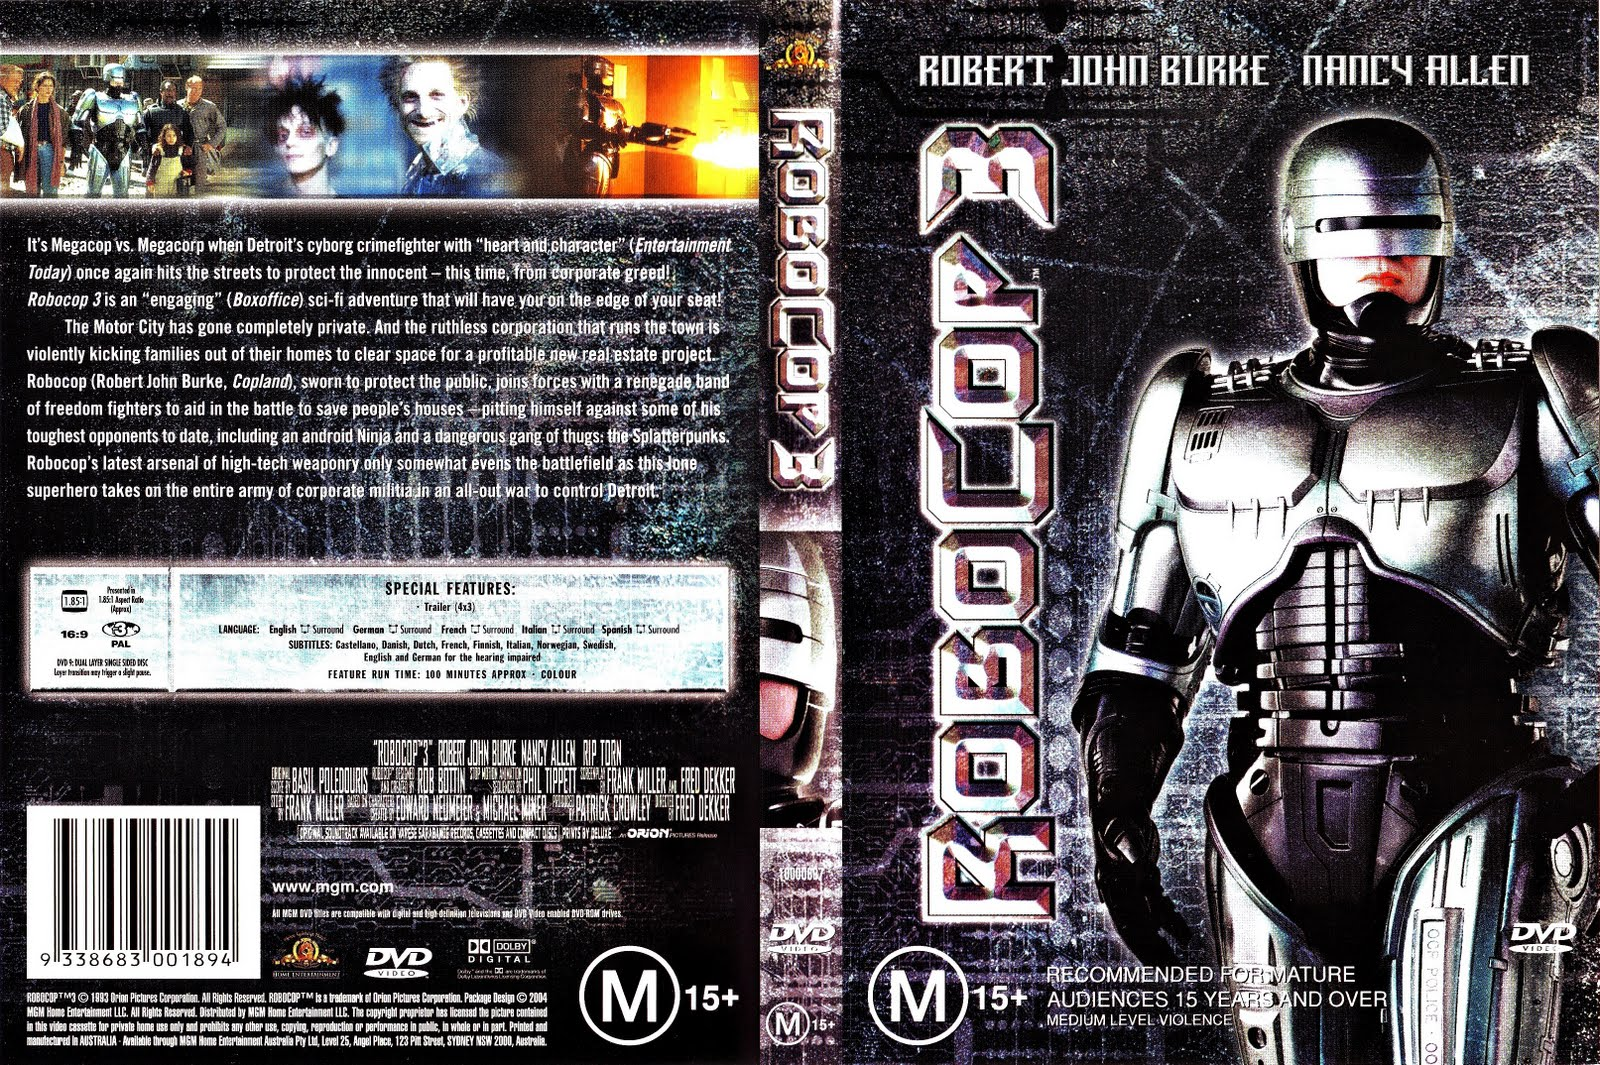 Robocop : DVD Collection | My Covers Collection